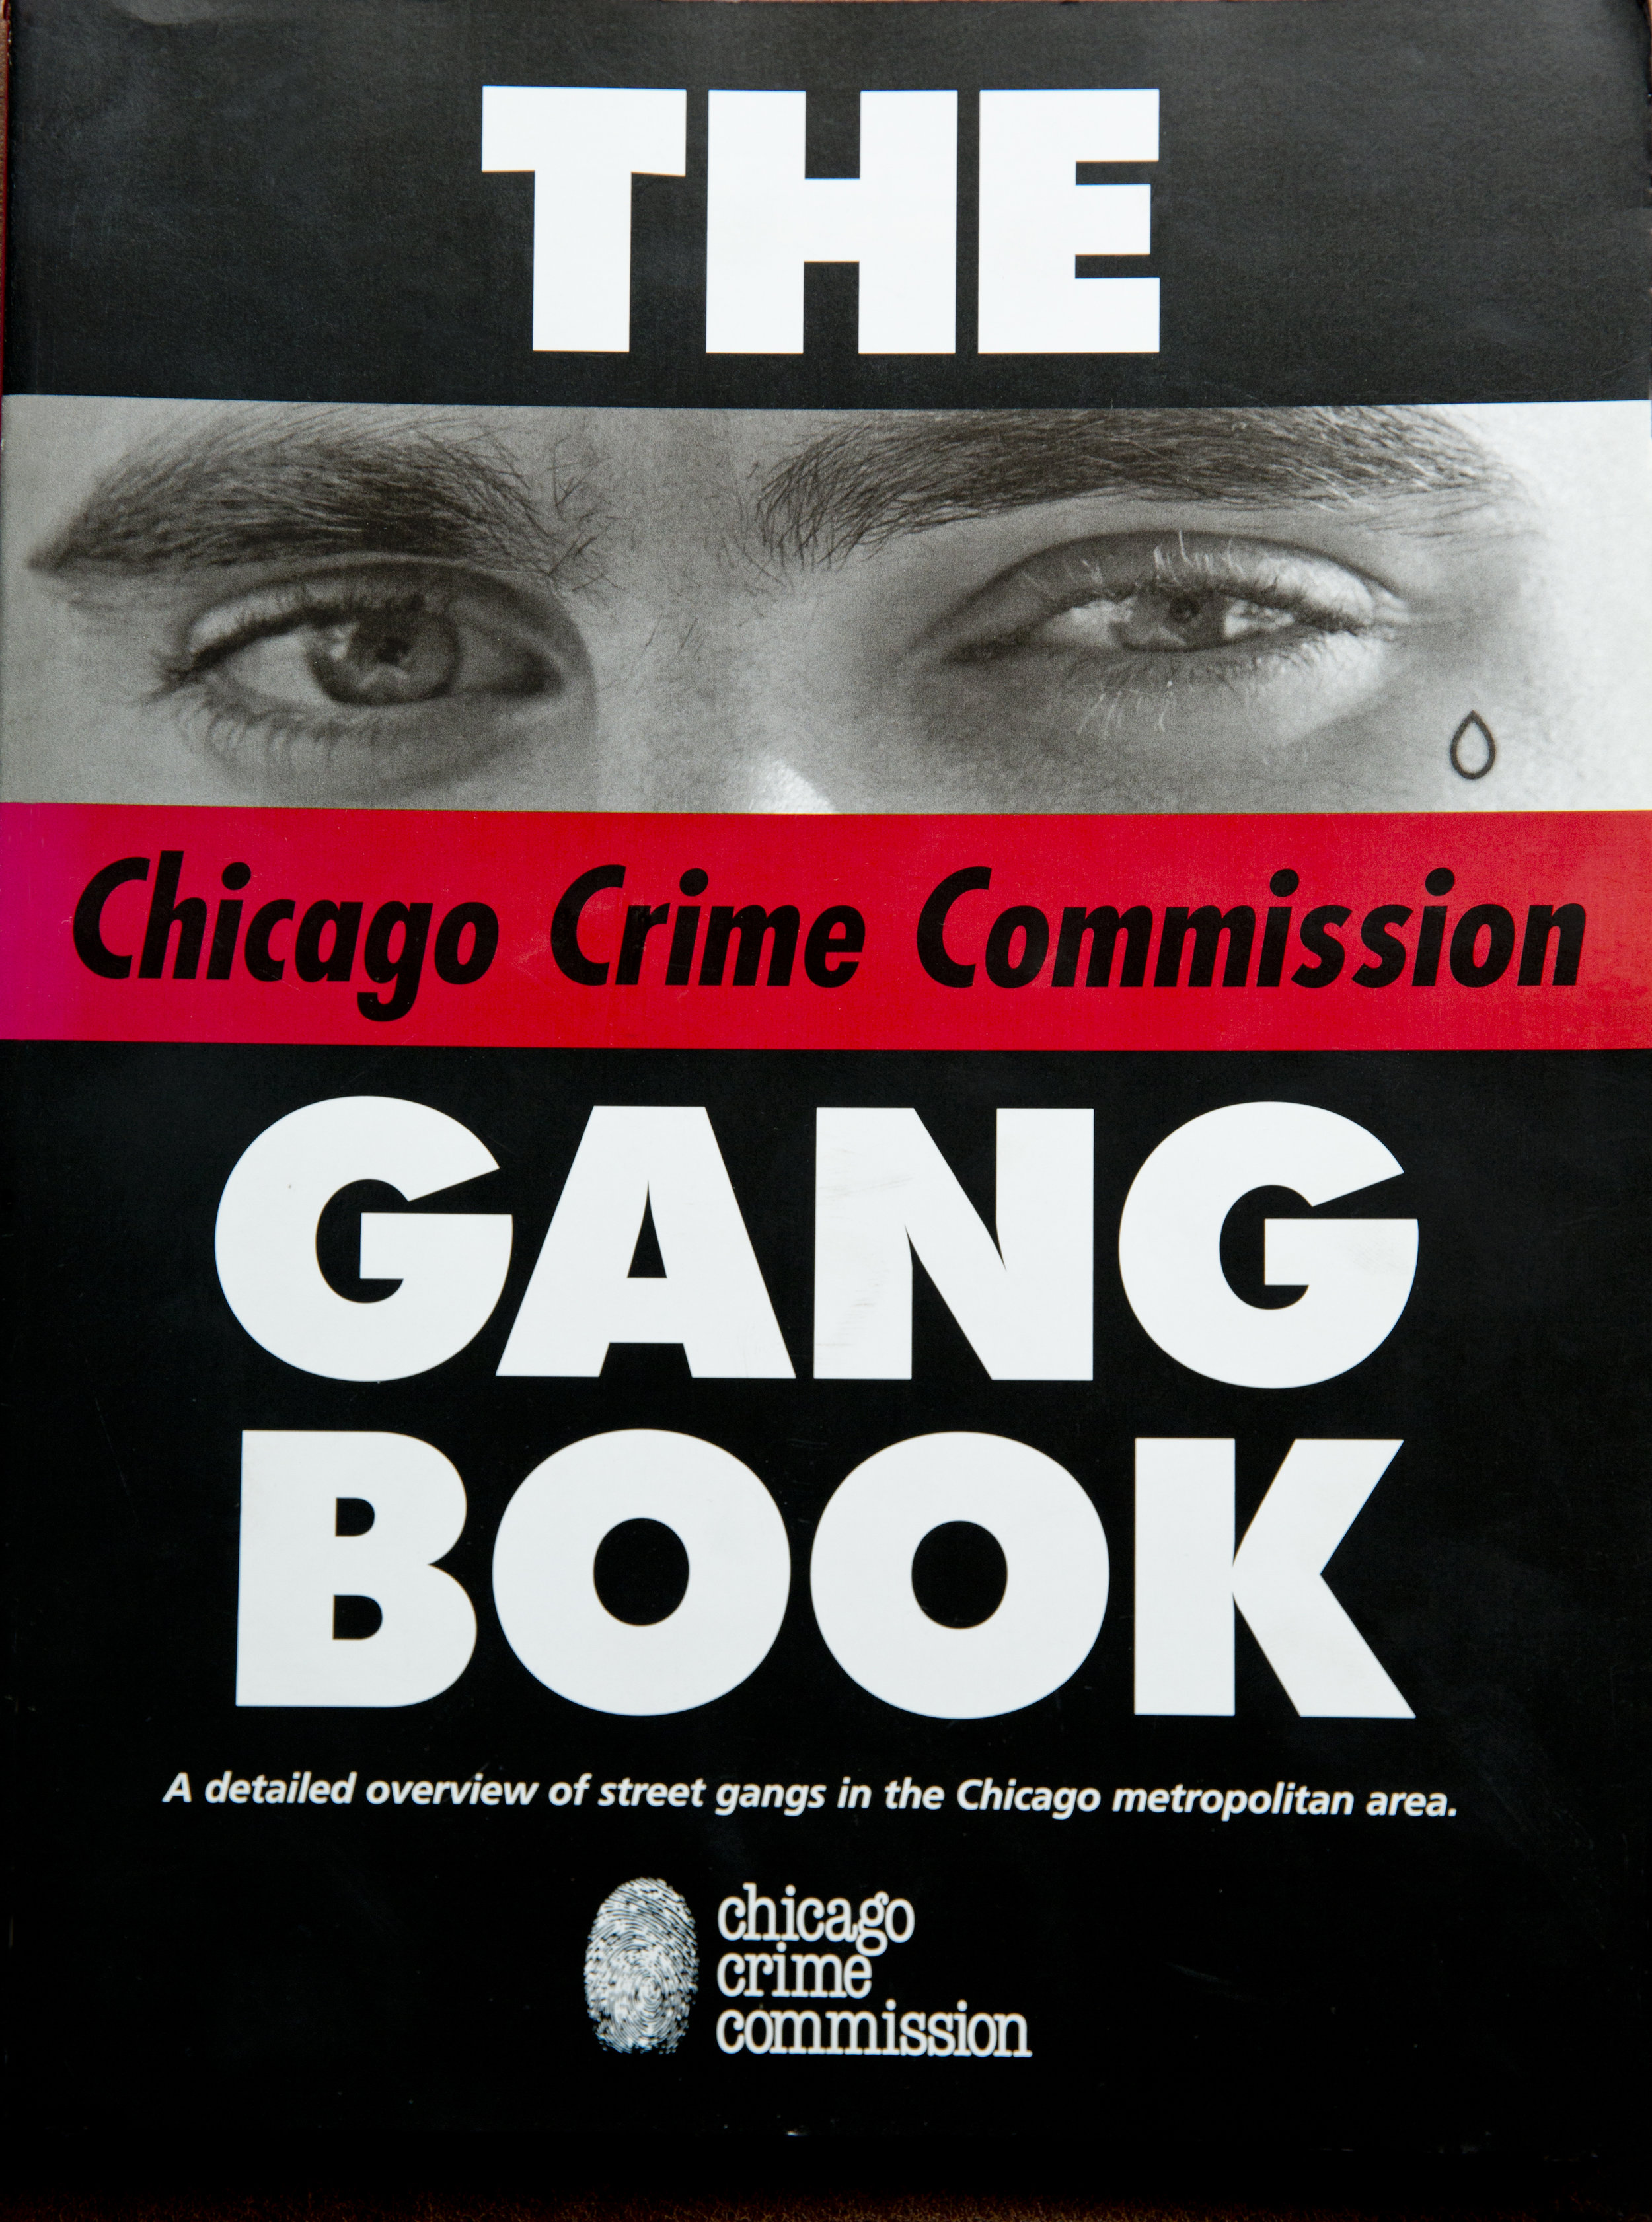 Book produced from Crime Commision photo shoots